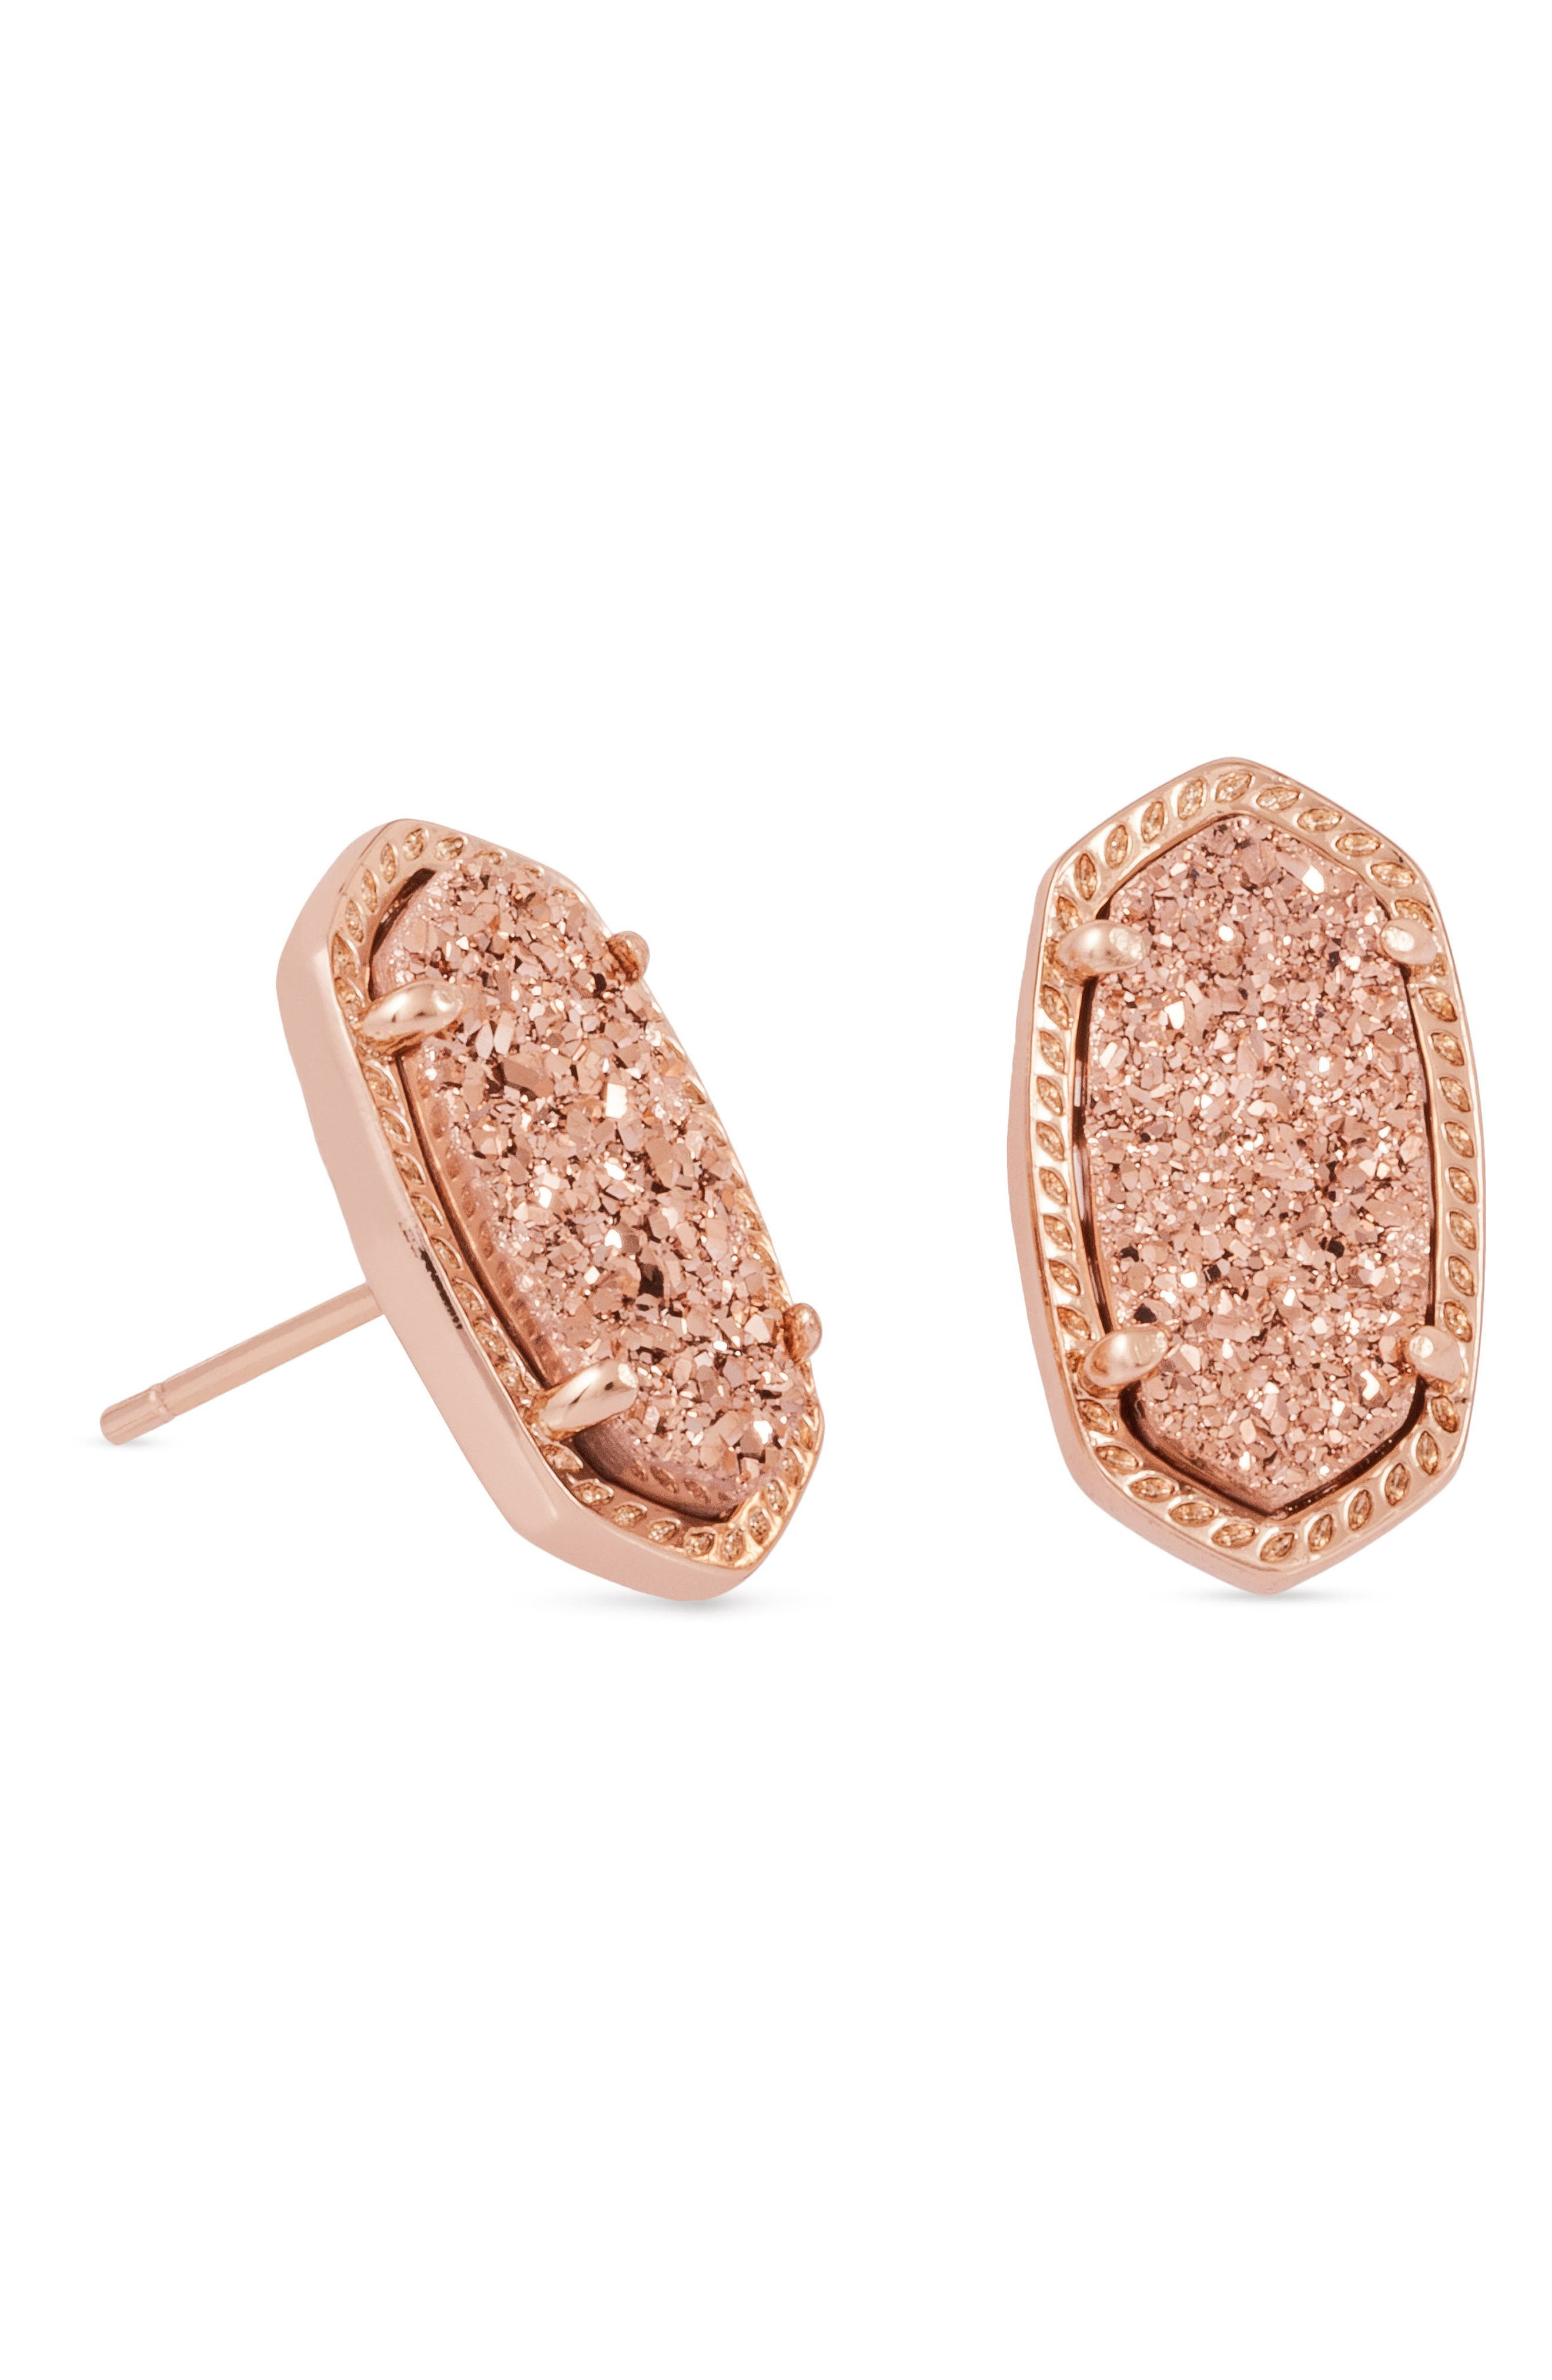 Ellie Oval Stone Stud Earrings,                         Main,                         color, Rose Gold Drusy/ Rose Gold